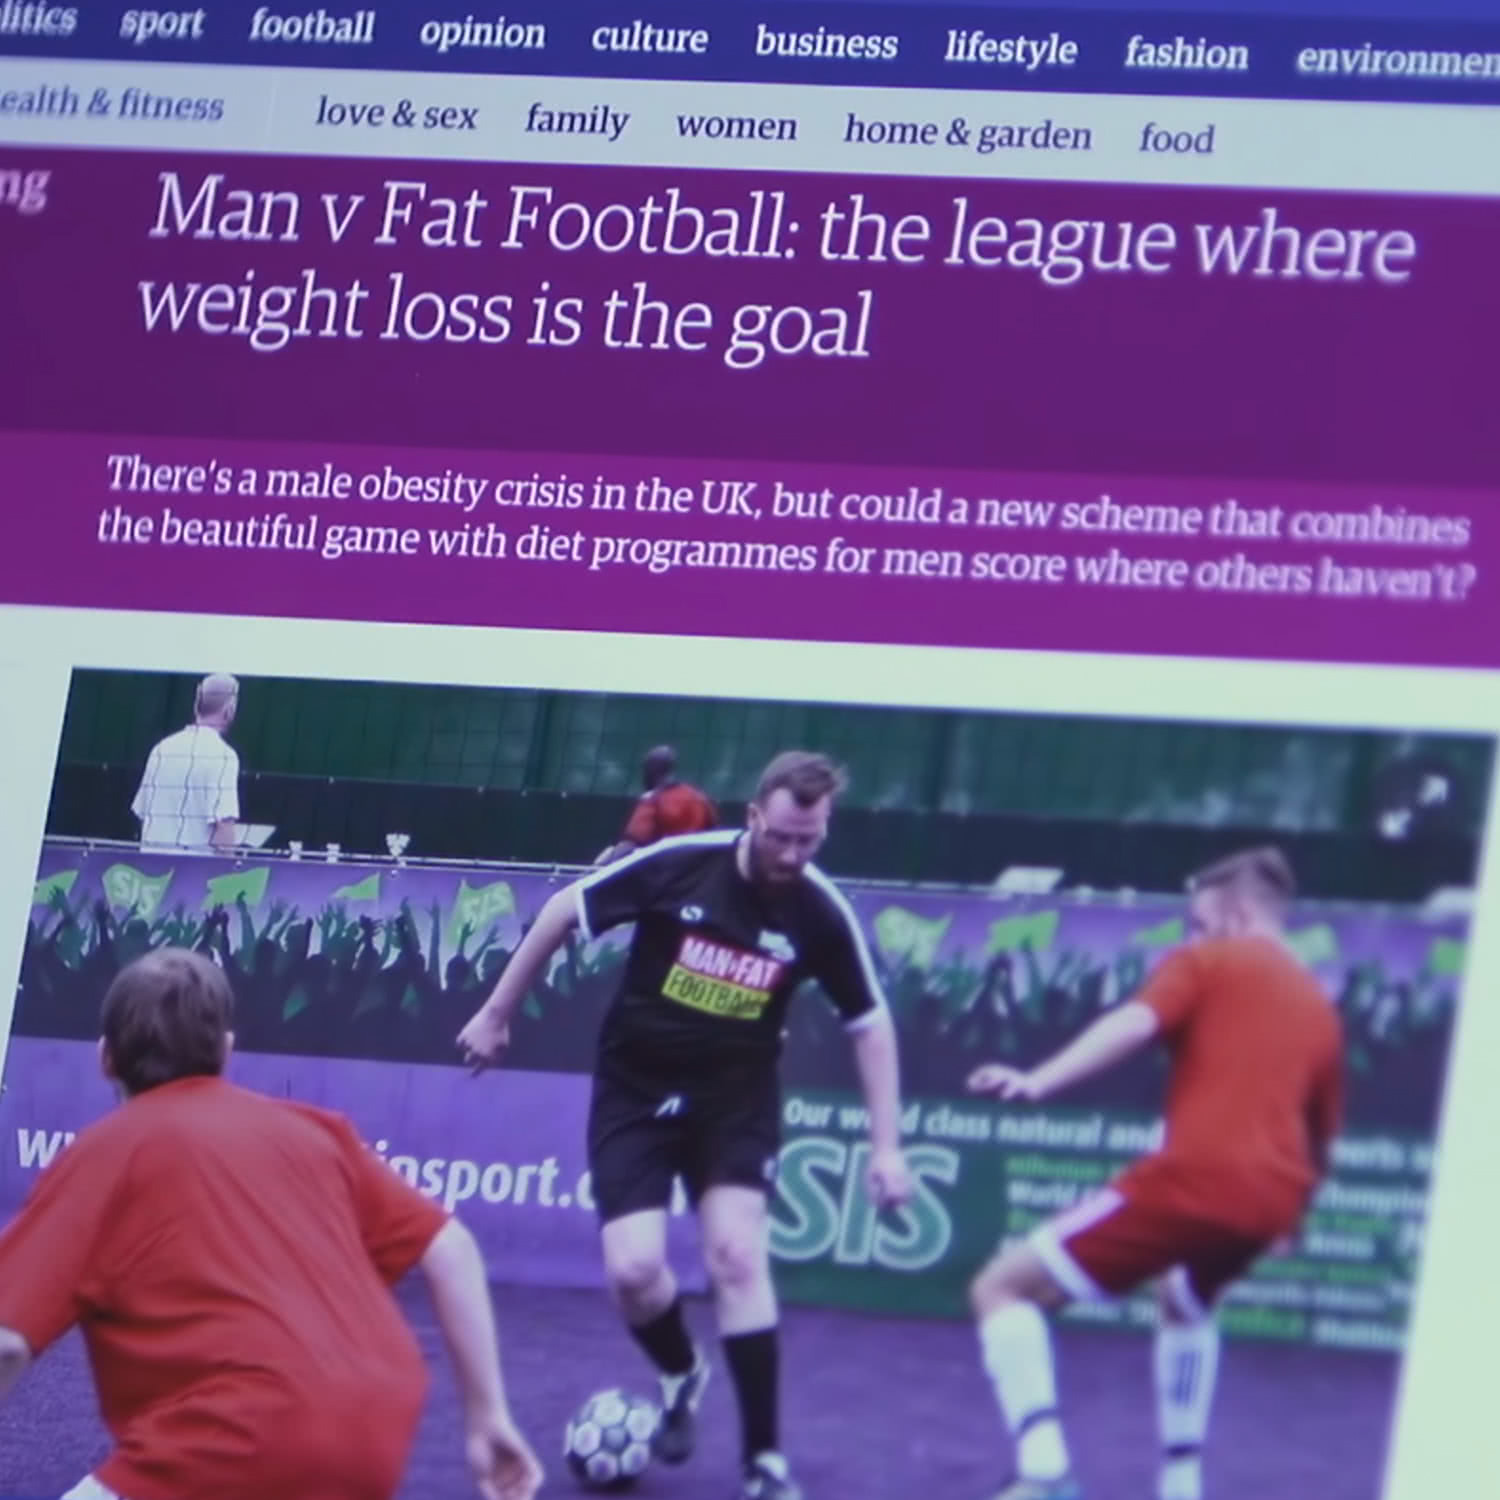 MAN V FAT news article on The Guardian website